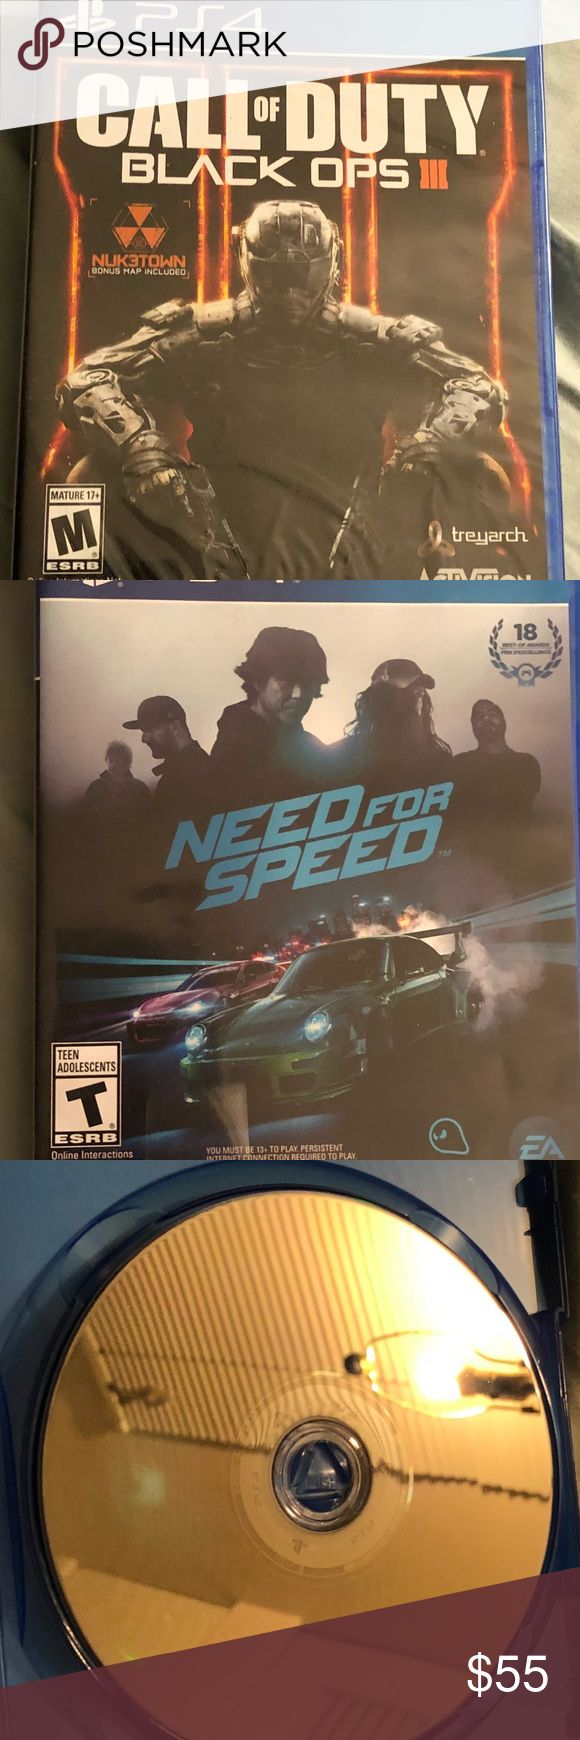 PS4 games Black Ops 2 never opened Need for Speed (opened, no scratches, see photo) playstation Other